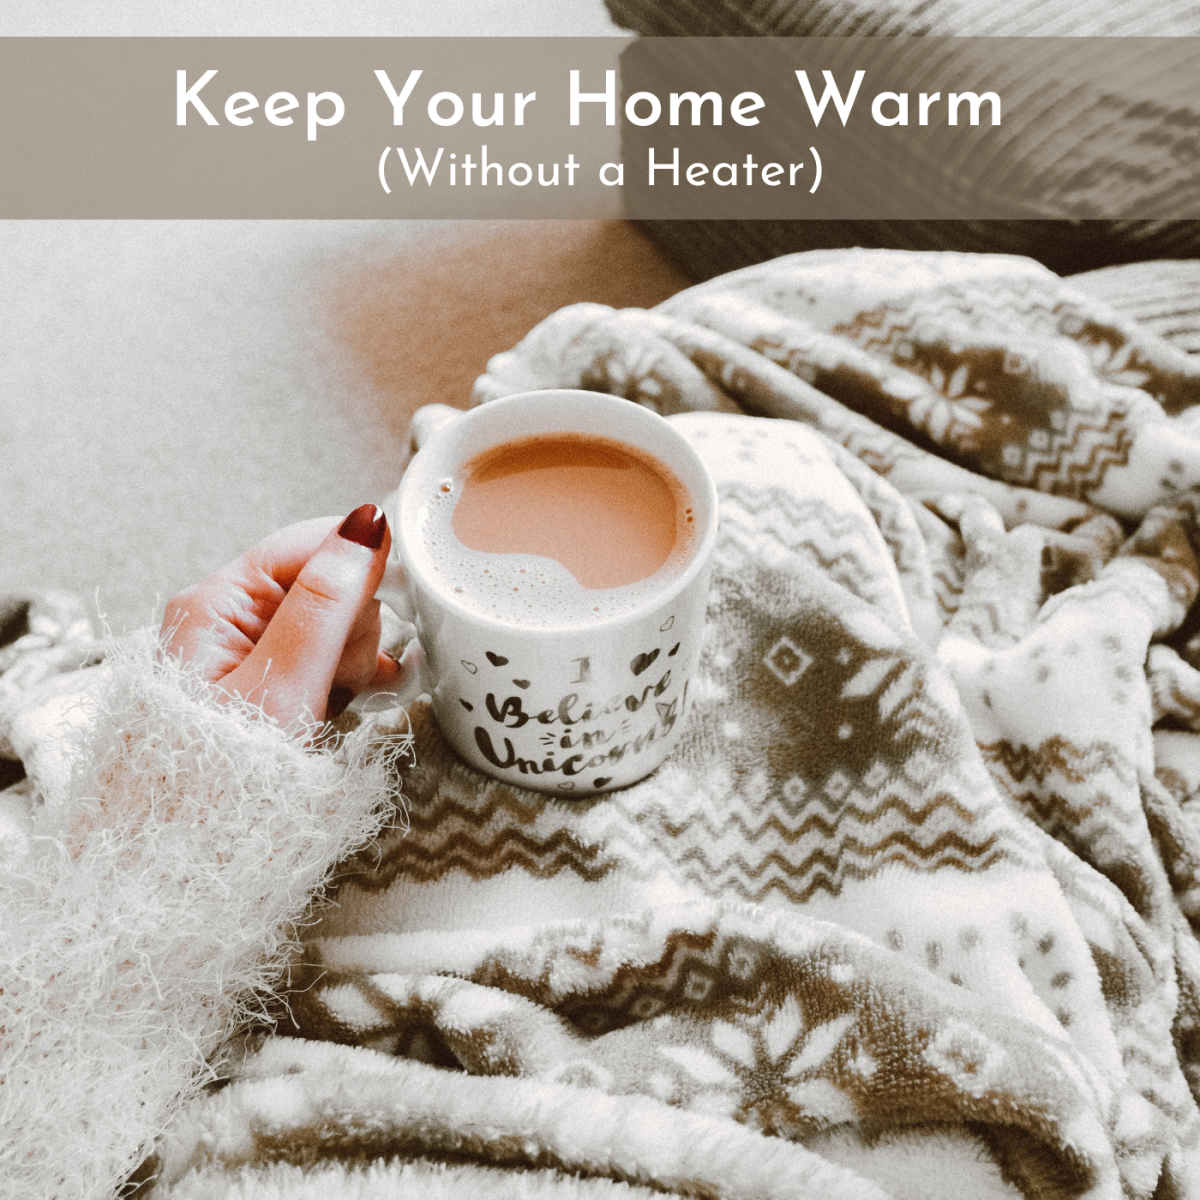 How to Keep Your Home Warm Without a Heater